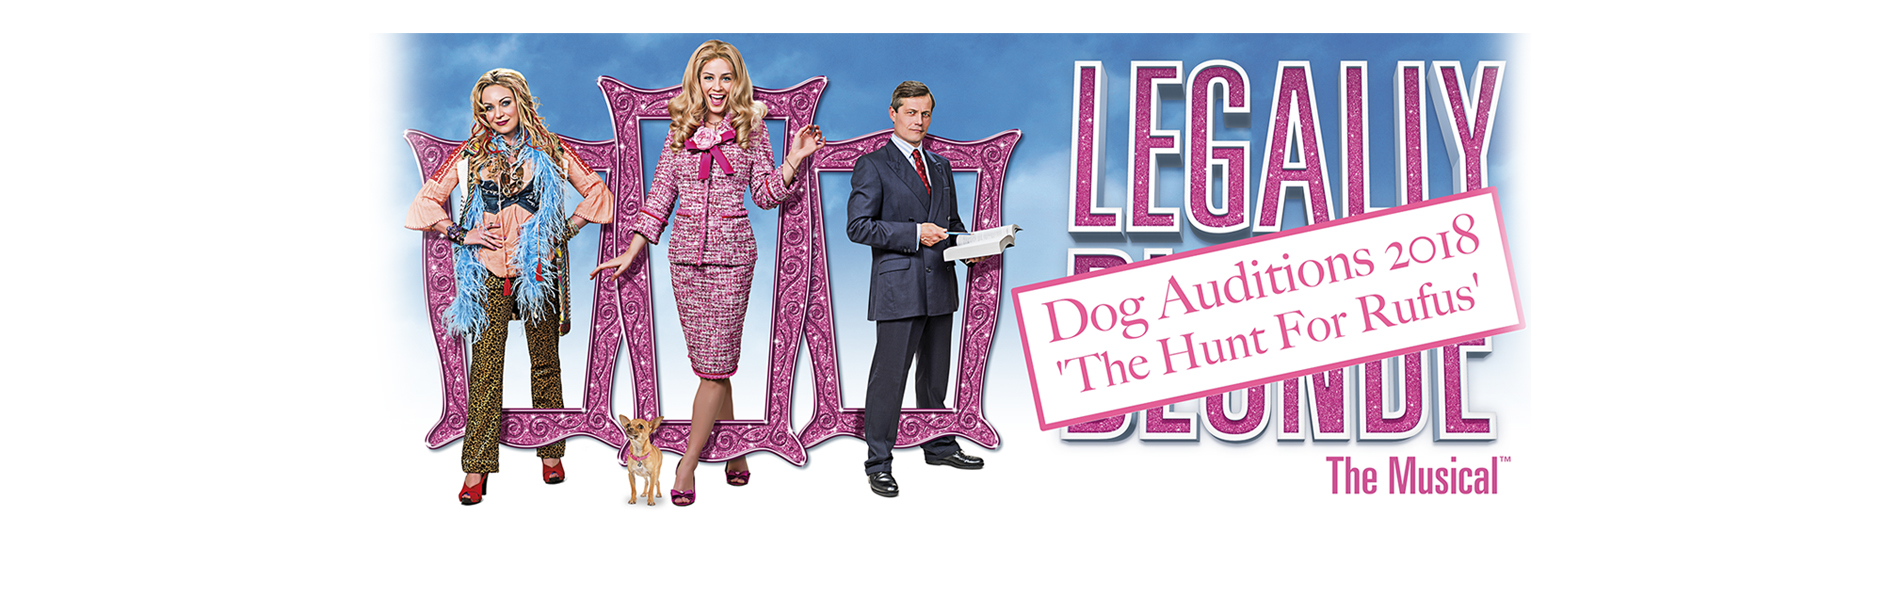 Legally Blonde Uk Tour Review